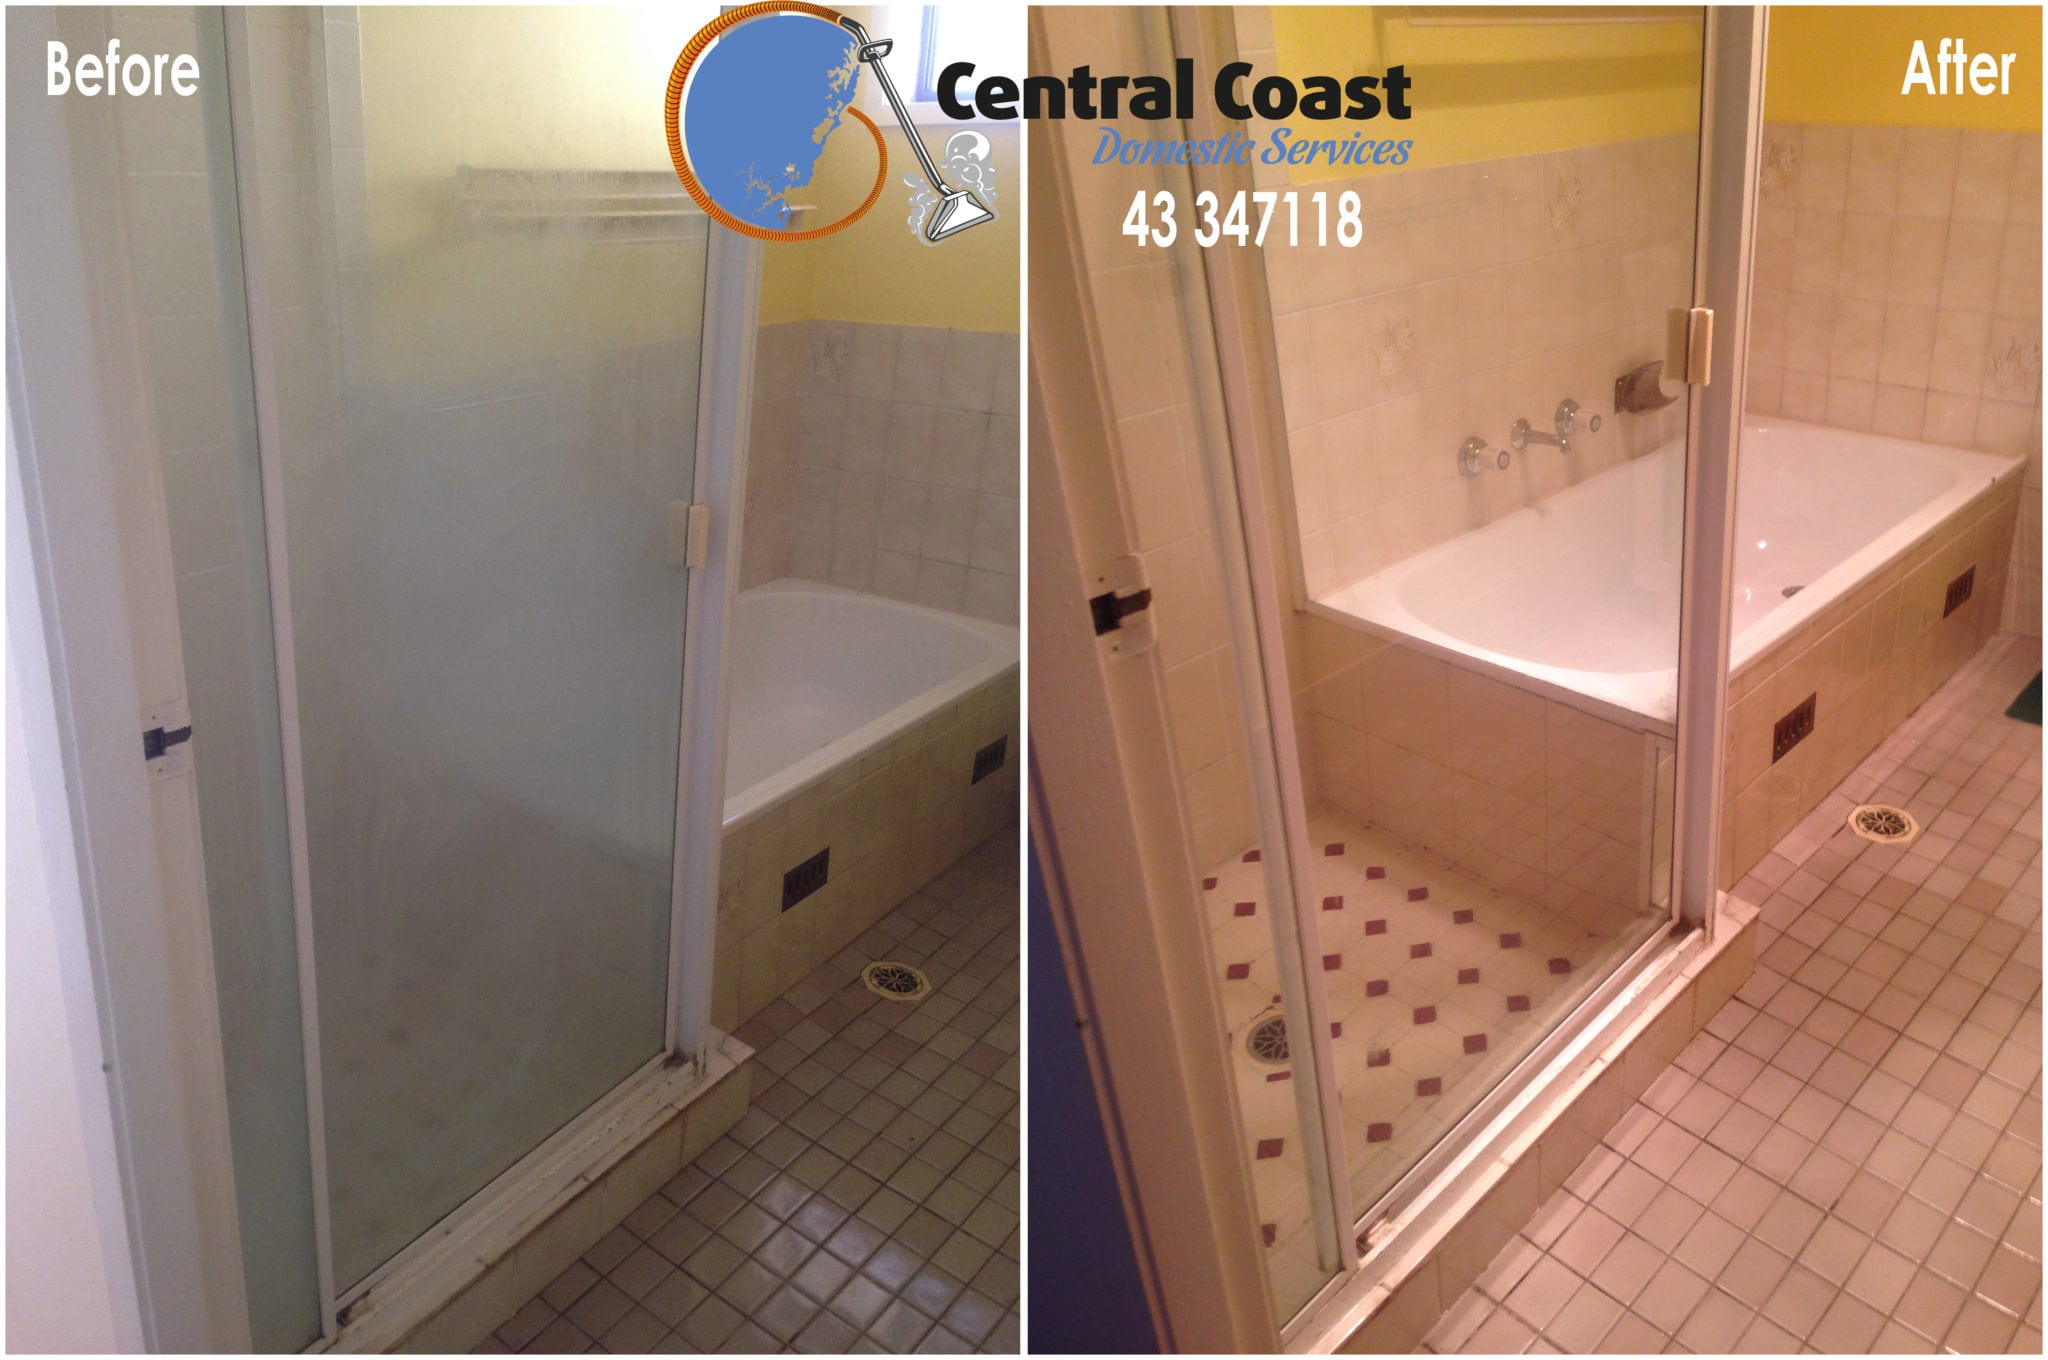 Shower screen Before & After